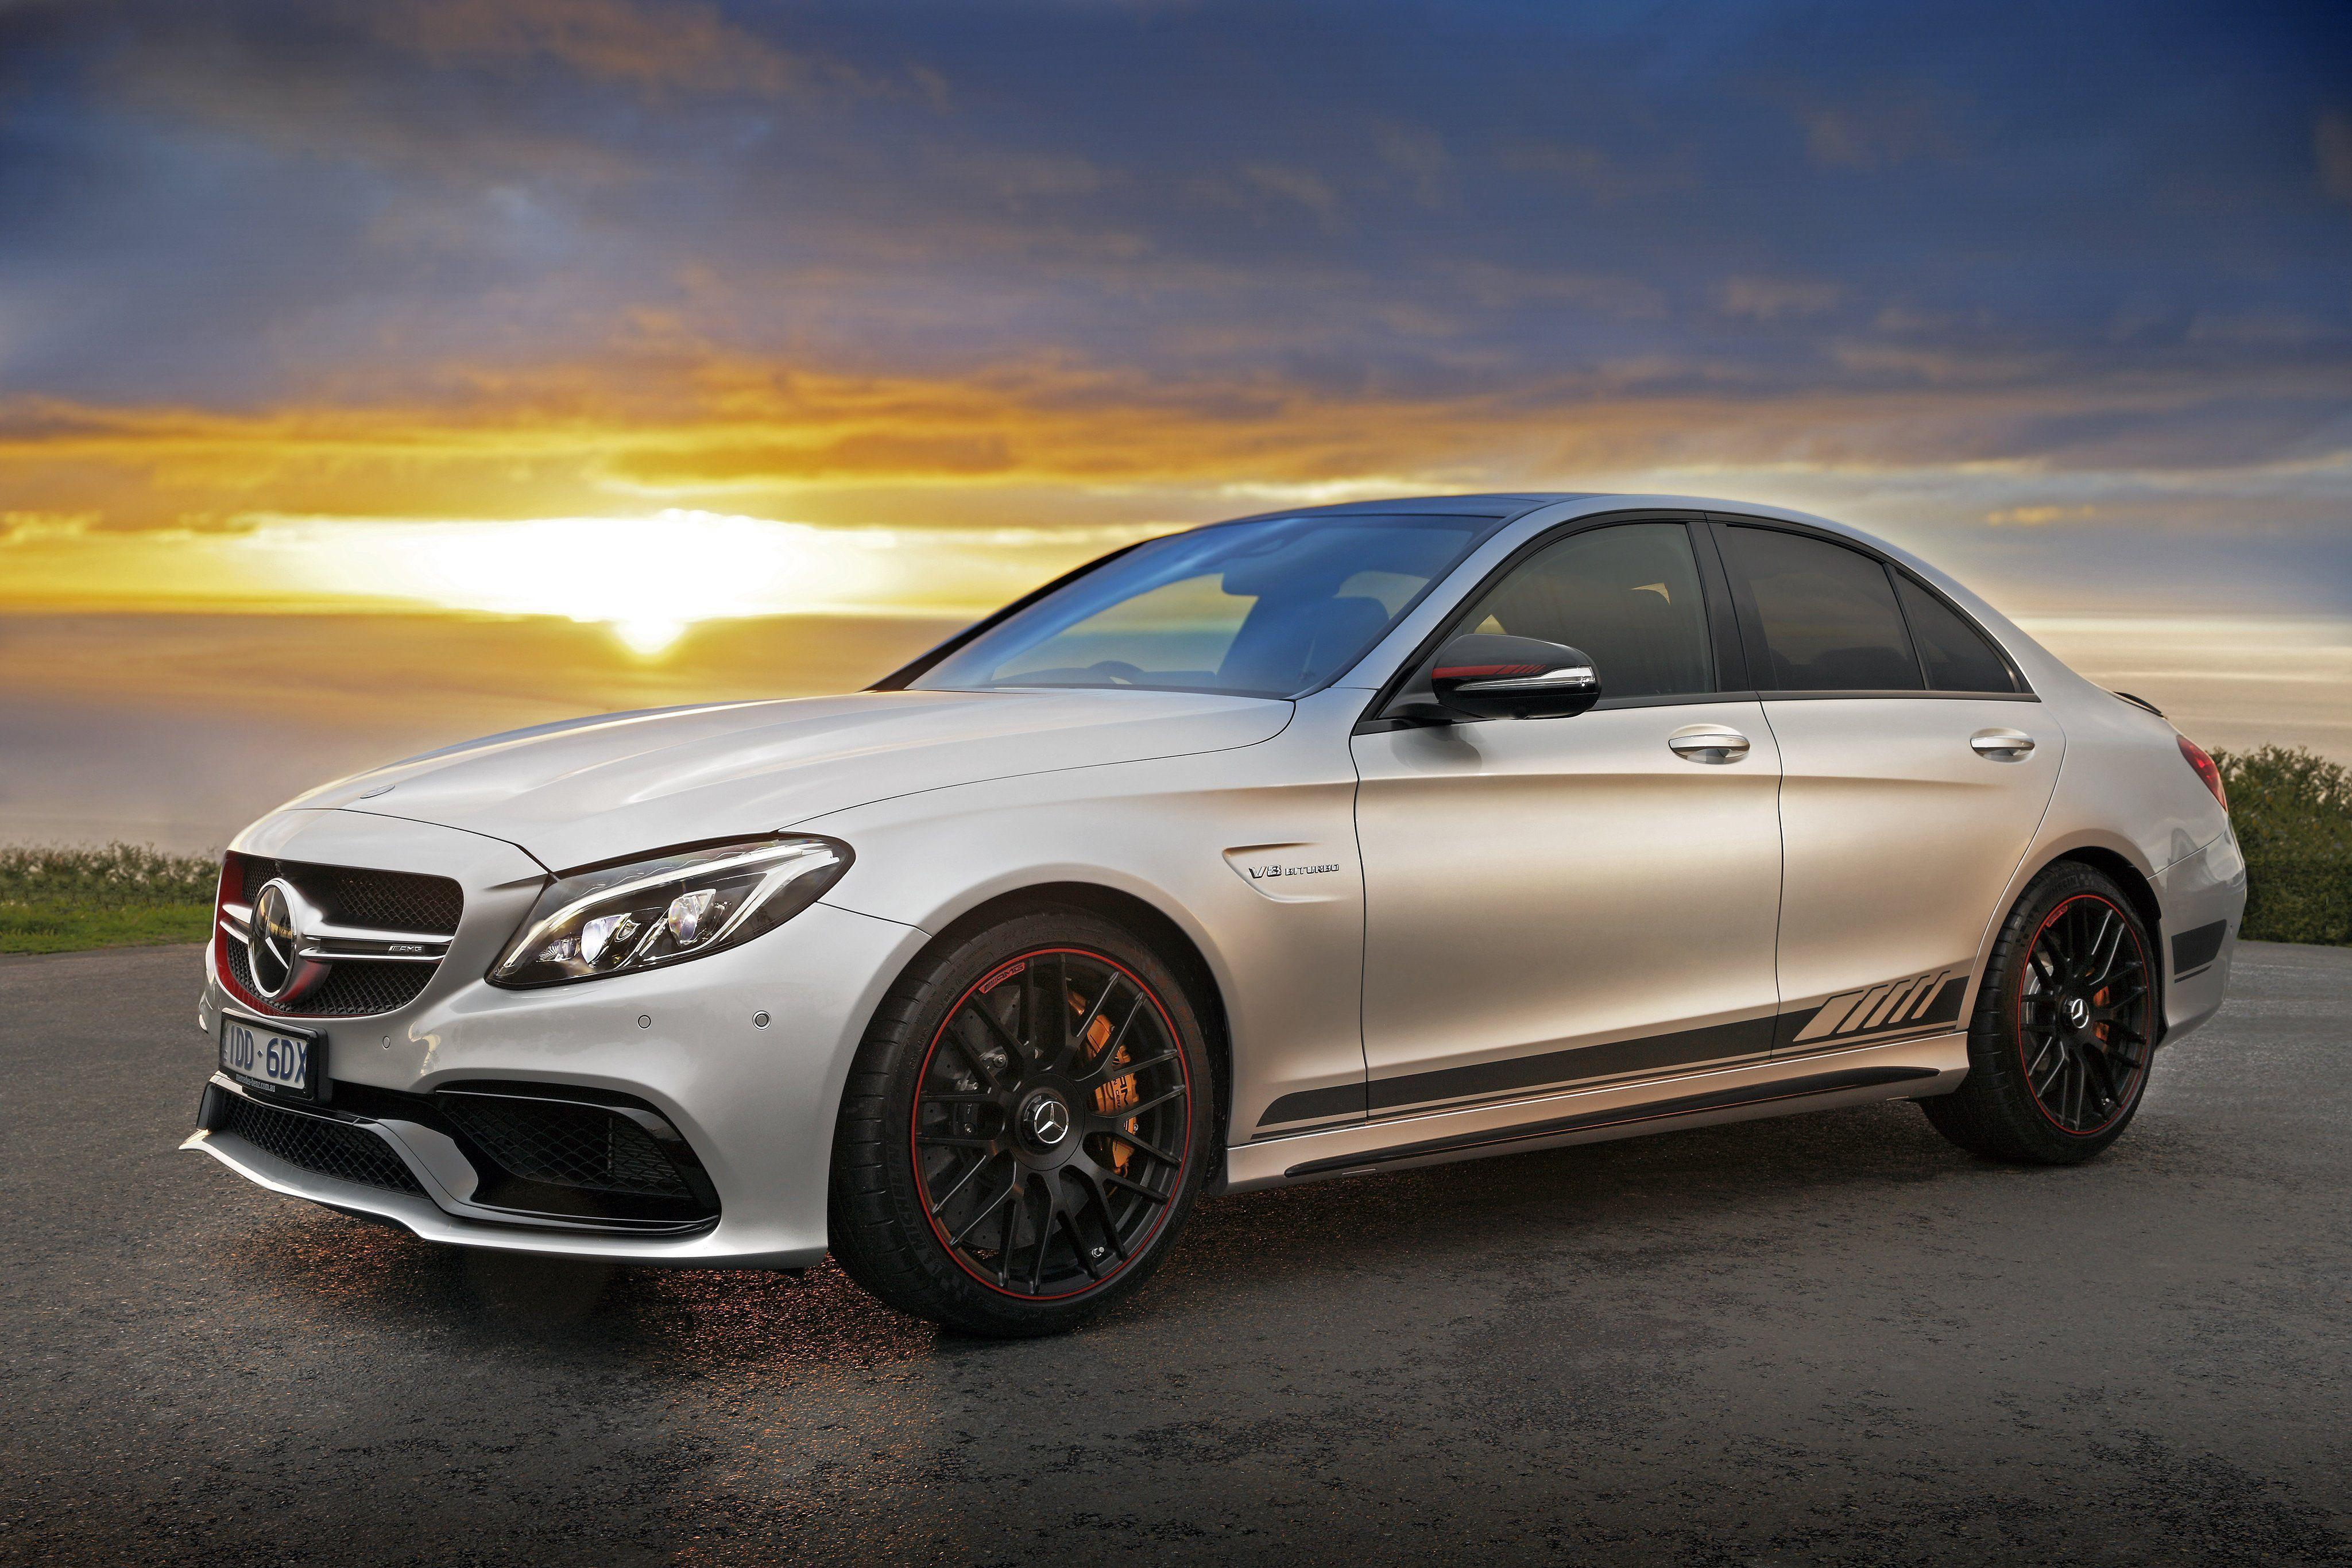 90 Mercedes Amg C63 S Coupe Wallpapers On Wallpapersafari